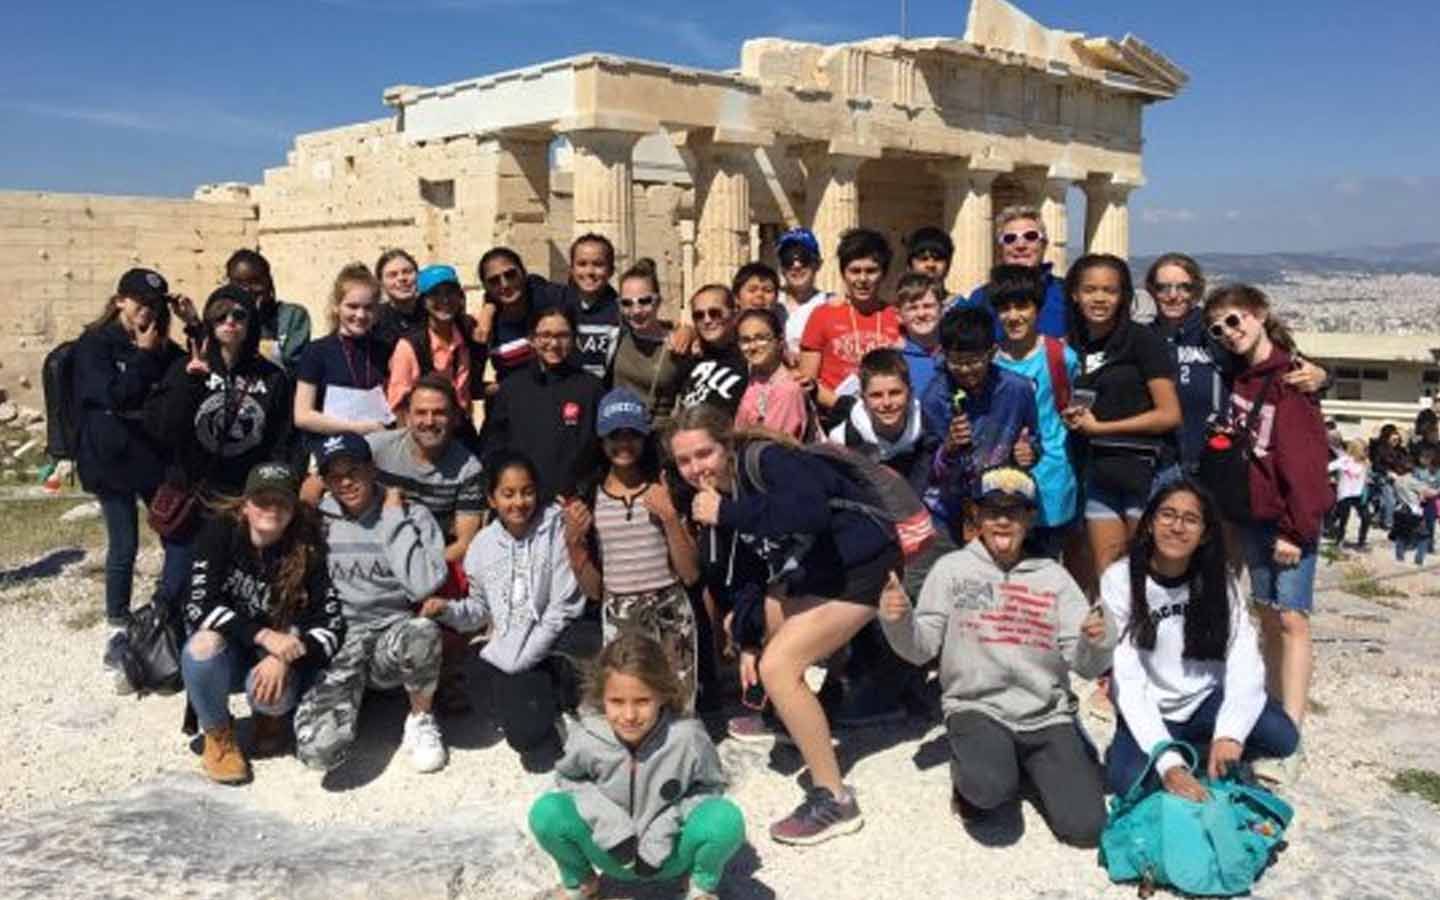 Students of Dubai College standing outside historic location in Greece